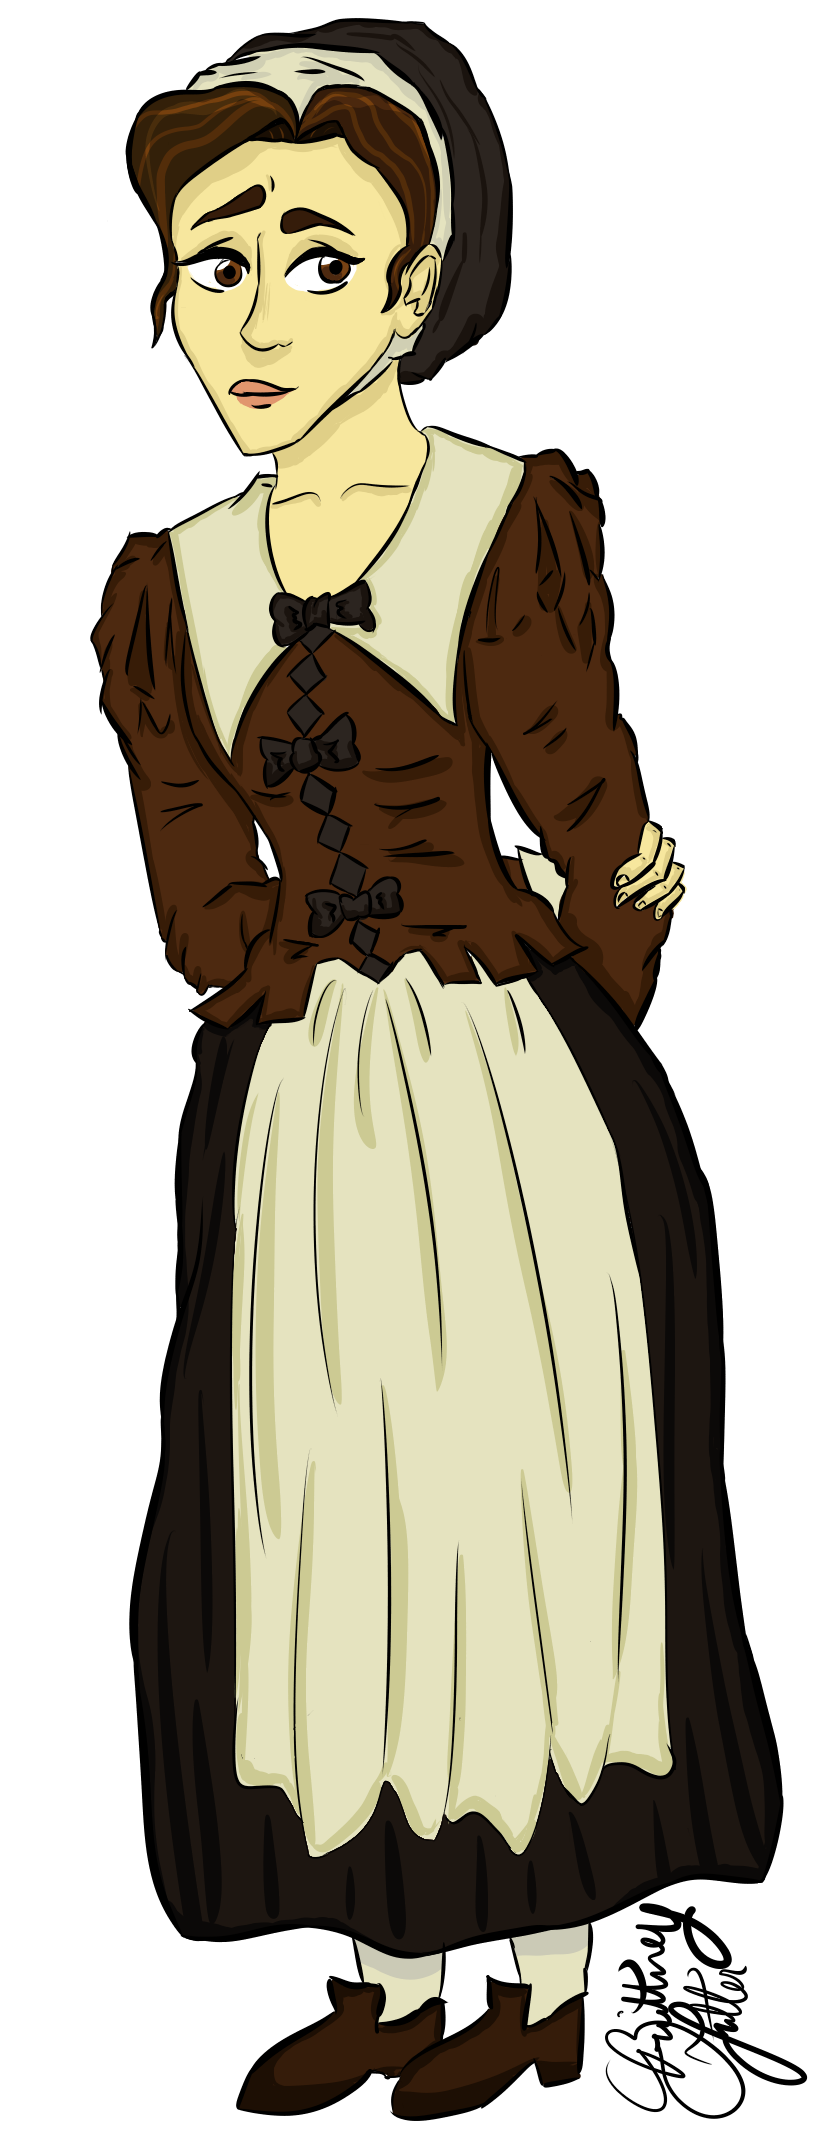 Tituba drawing abigail. Williams by skelligraphy on